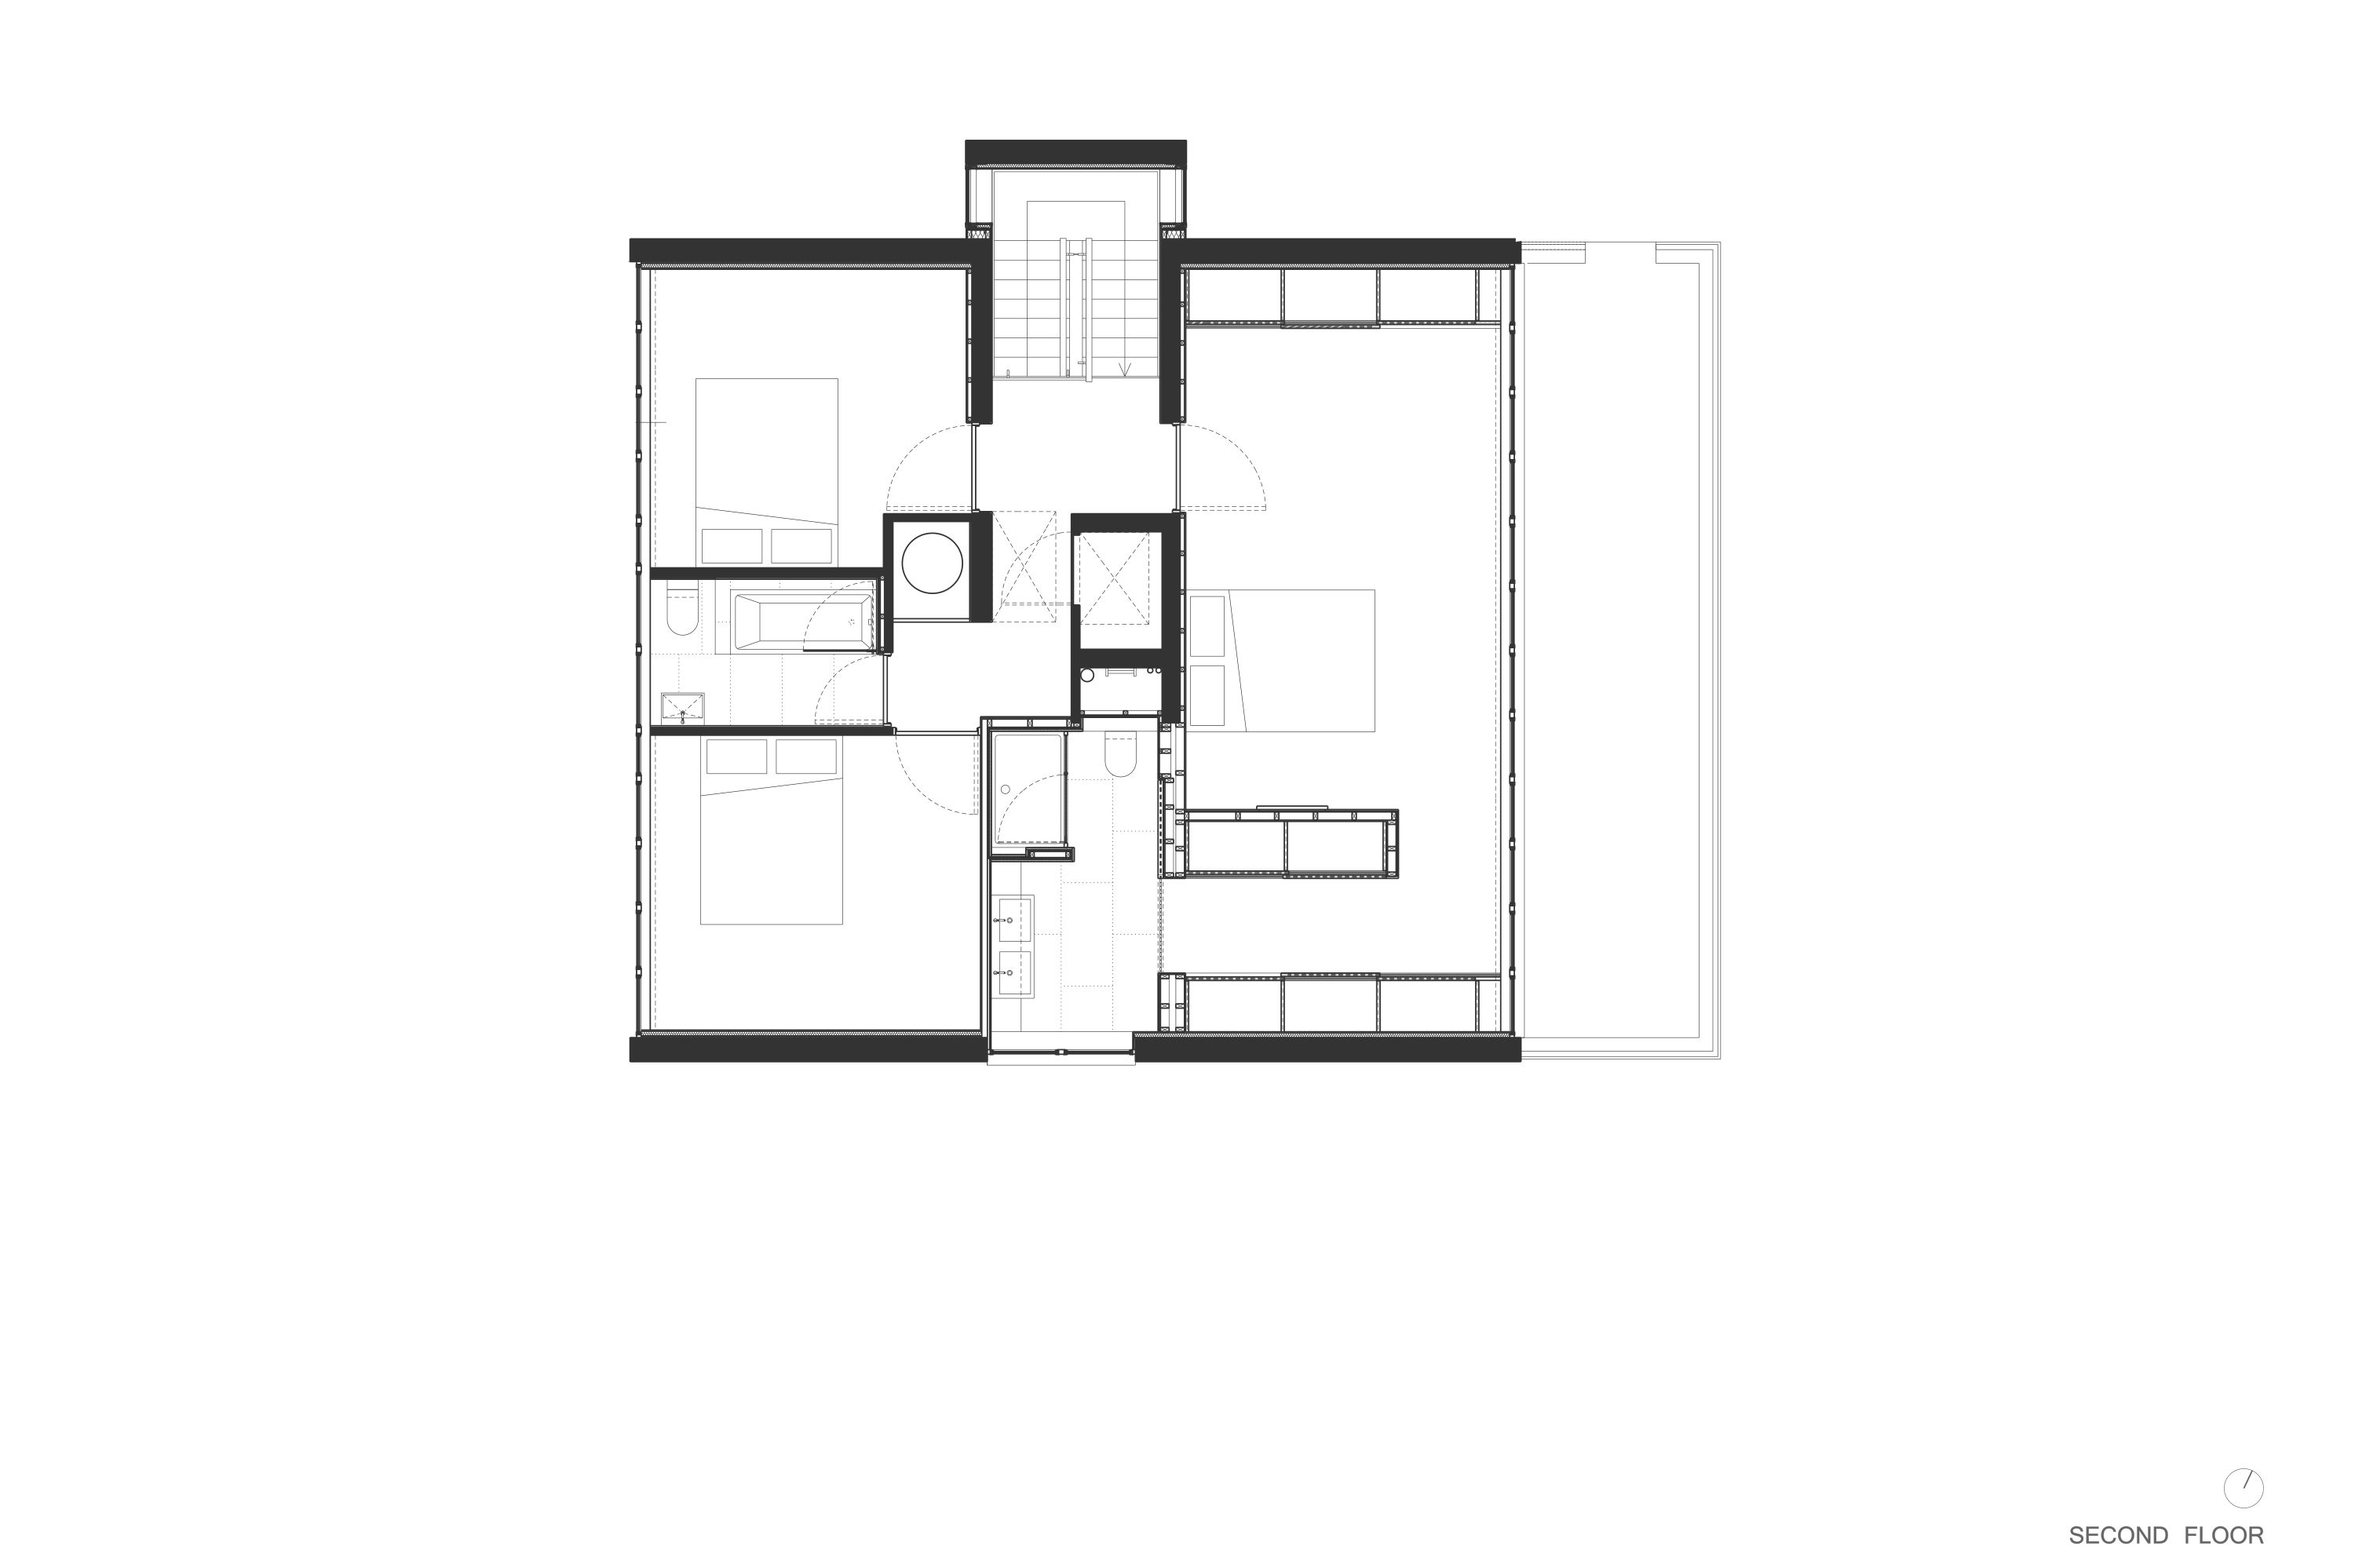 Feversham house mclarenexcell house how to plan design